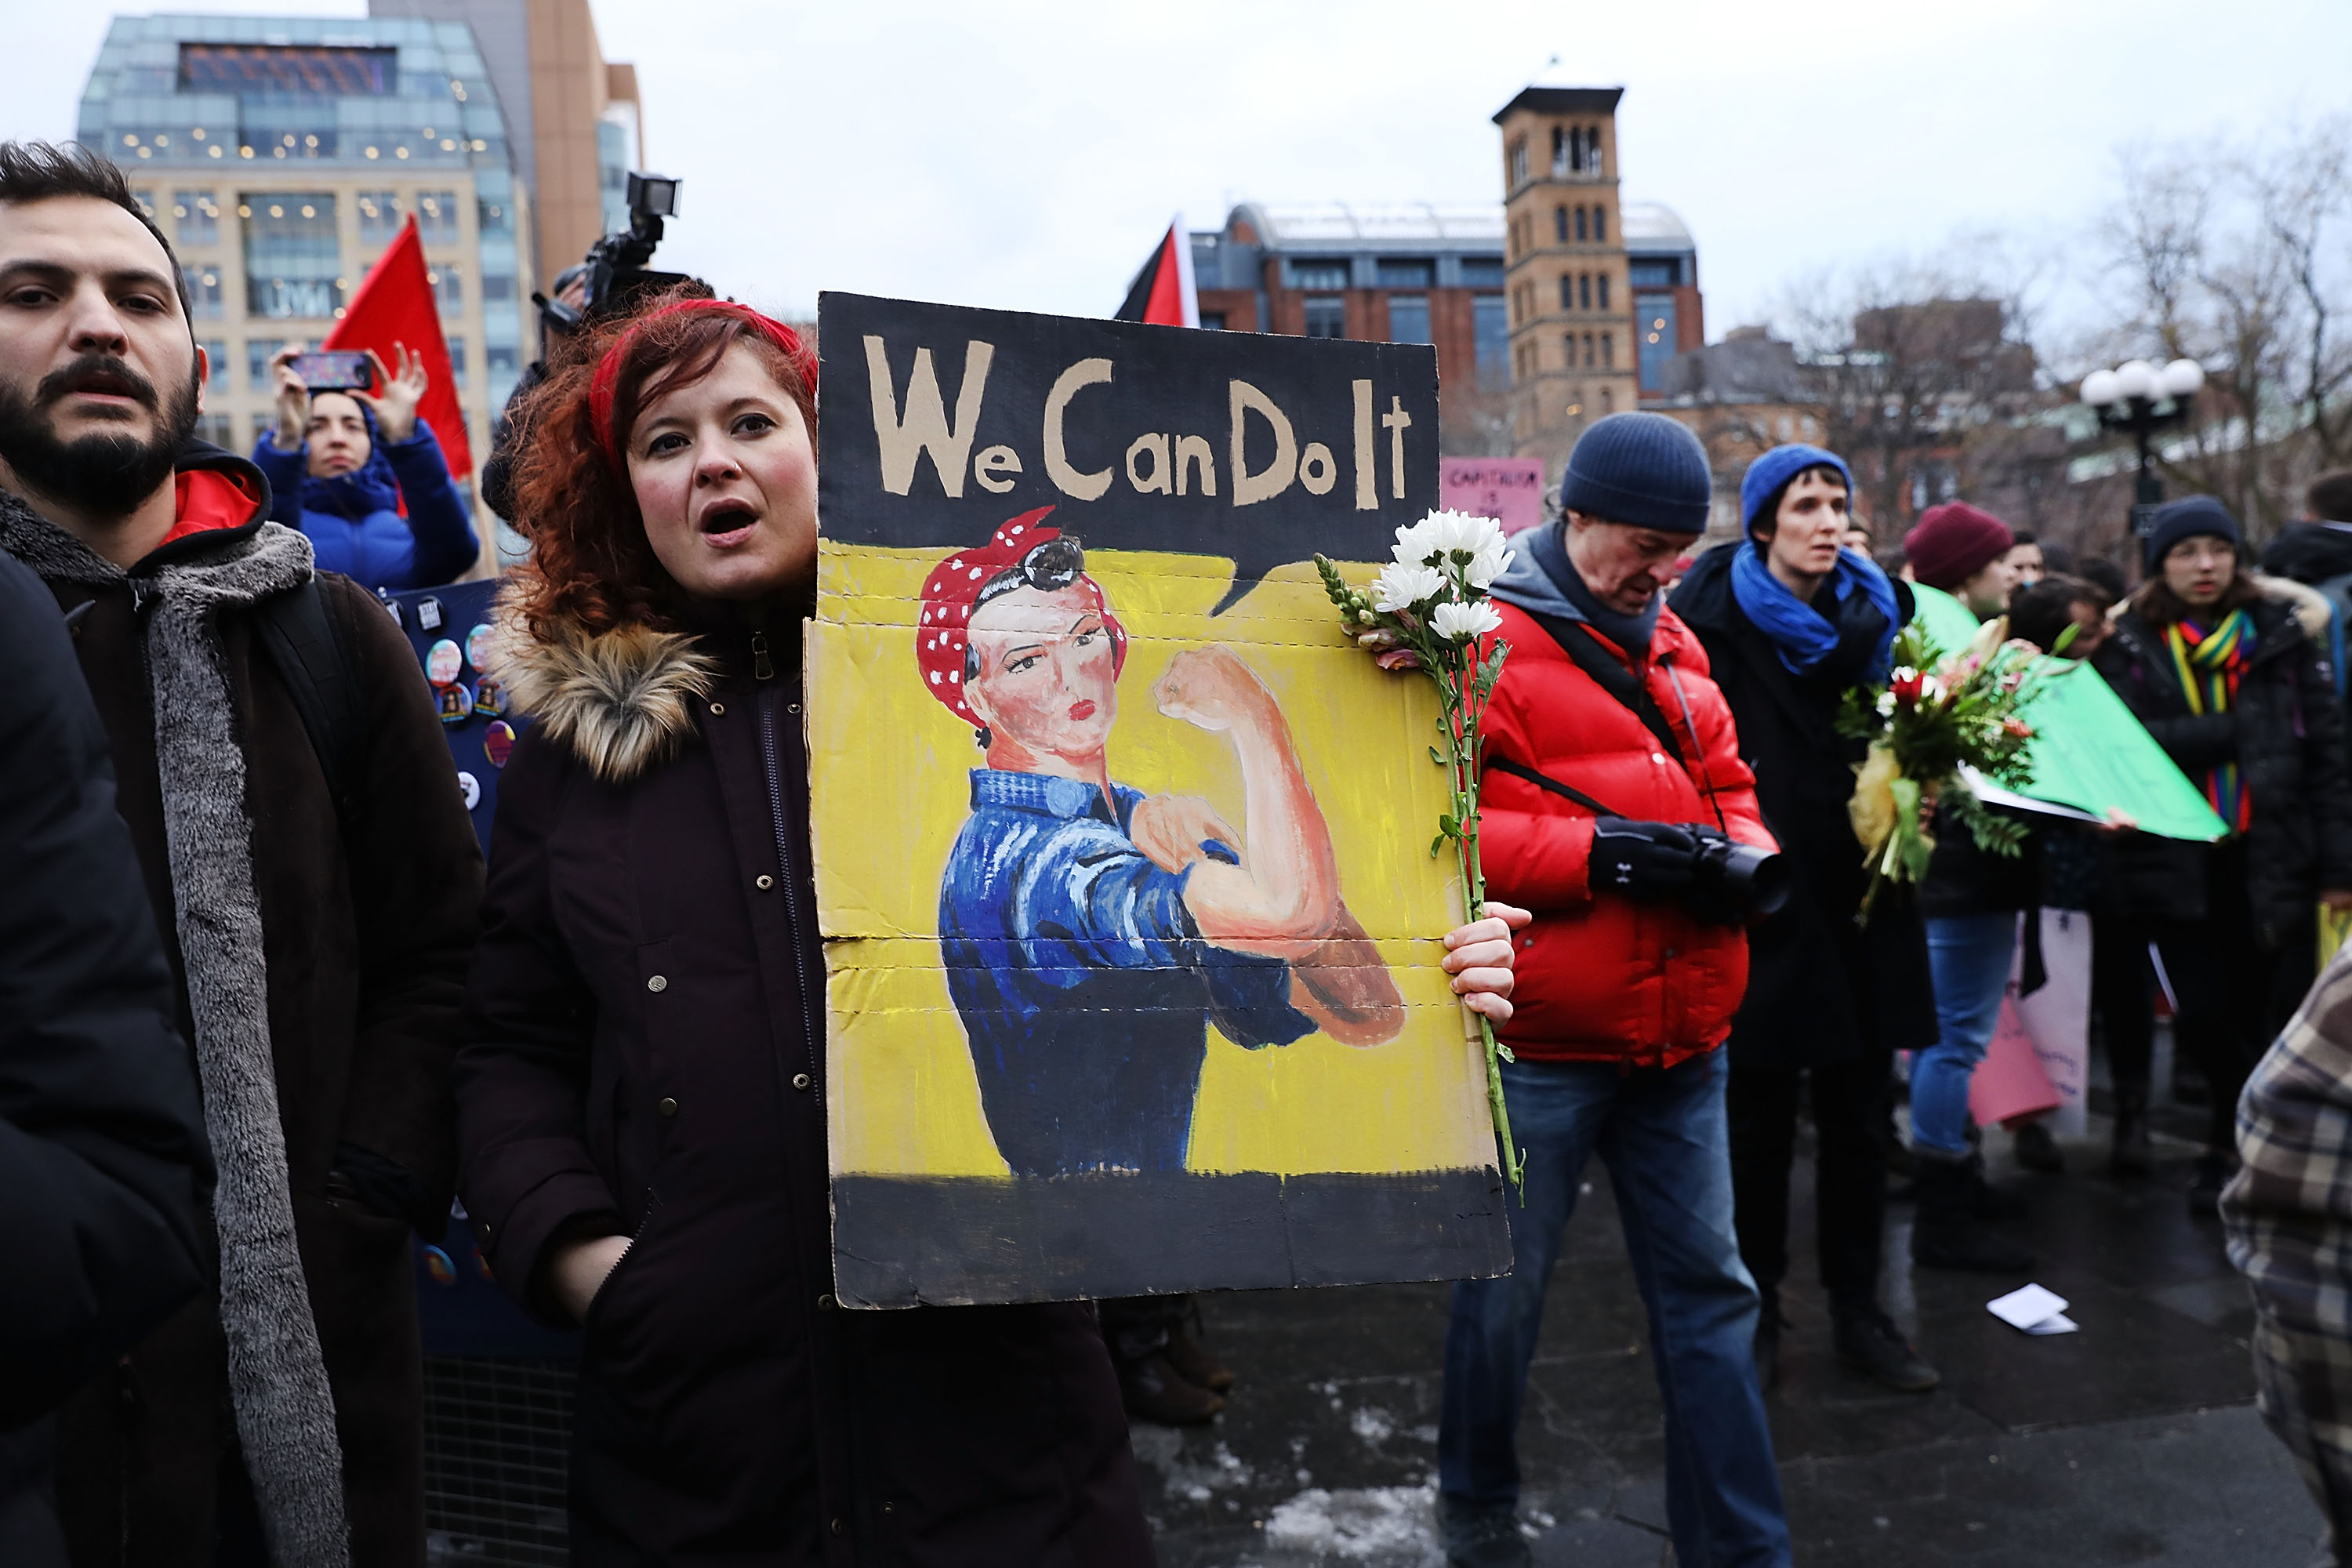 """A woman at a rally holds a sign reading """"We can do it"""" with a picture of Rosie the Riveter."""